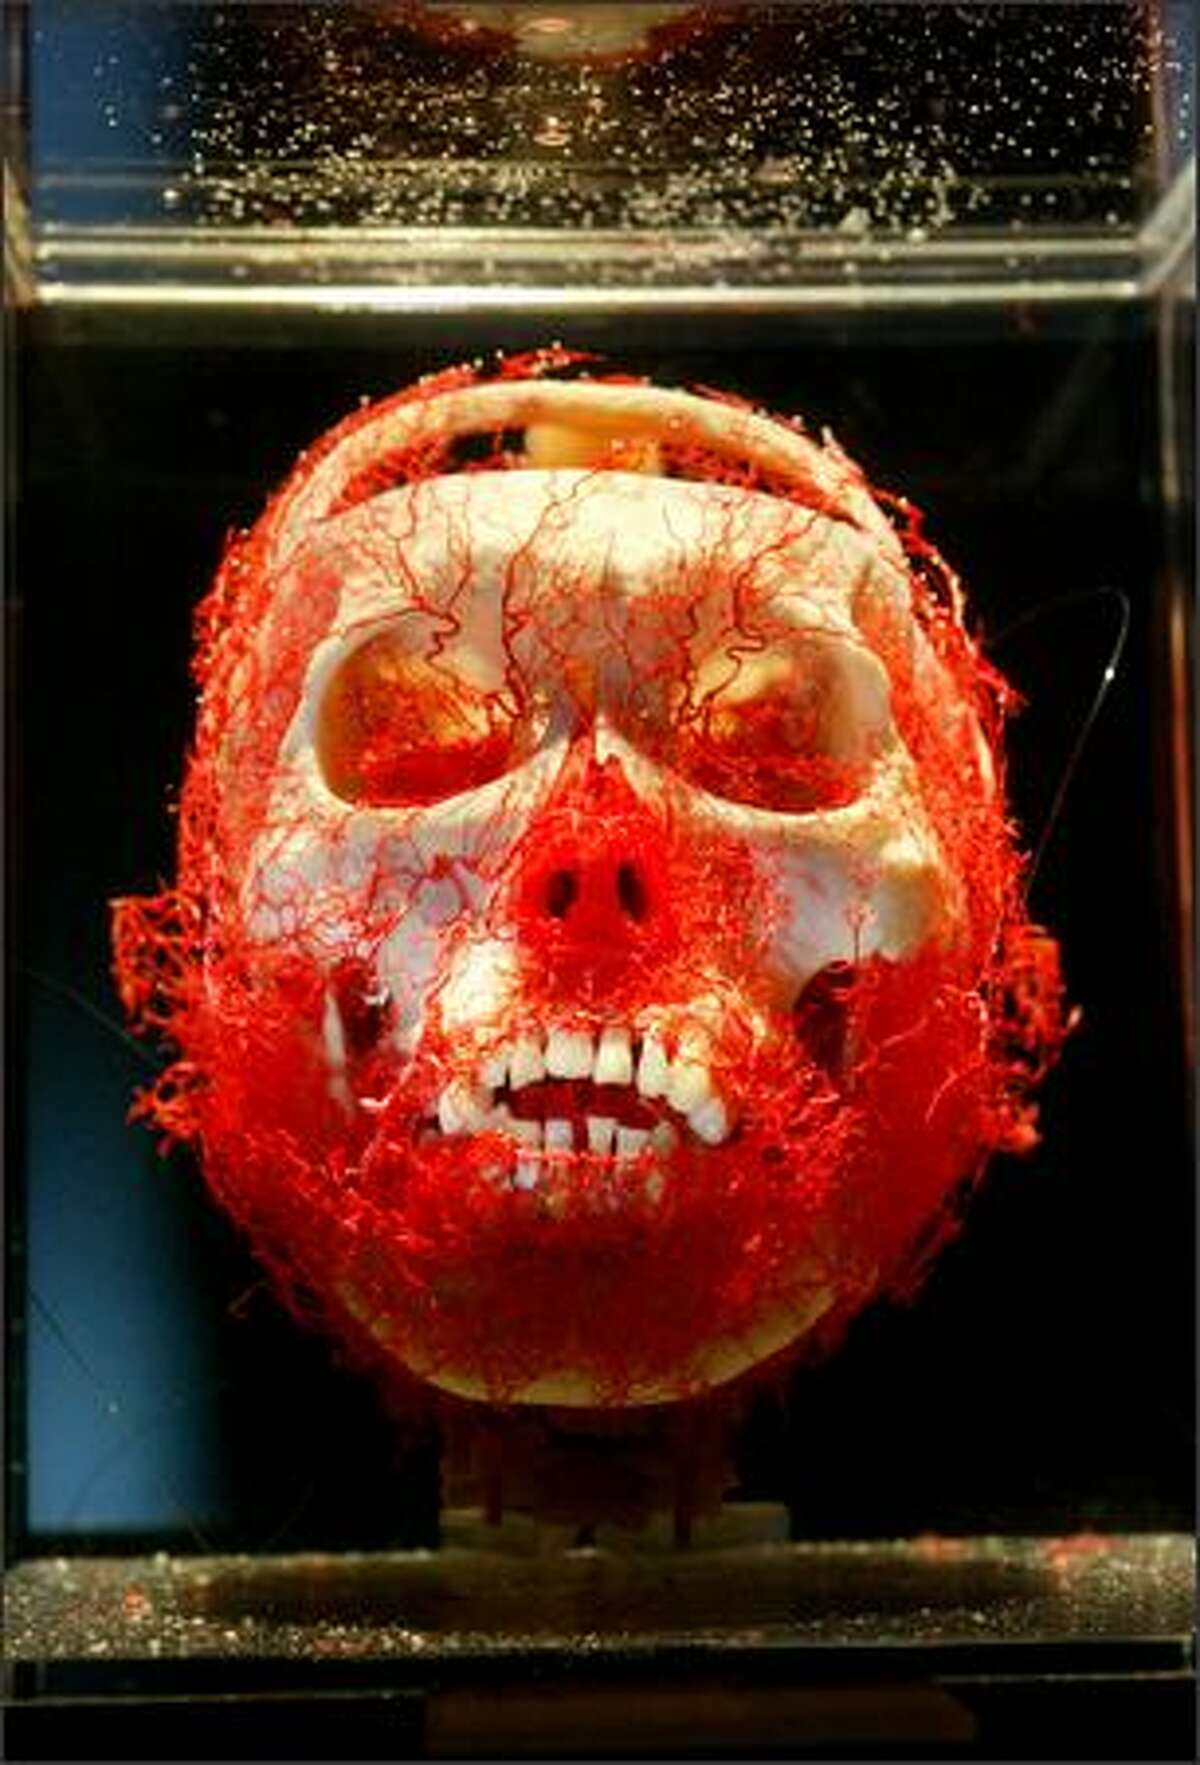 """The skull and arteries of the head can be studied this display in the controversial """"Bodies...The Exhibition"""" at the Washington State Convention and Trade Center through Dec. 31."""